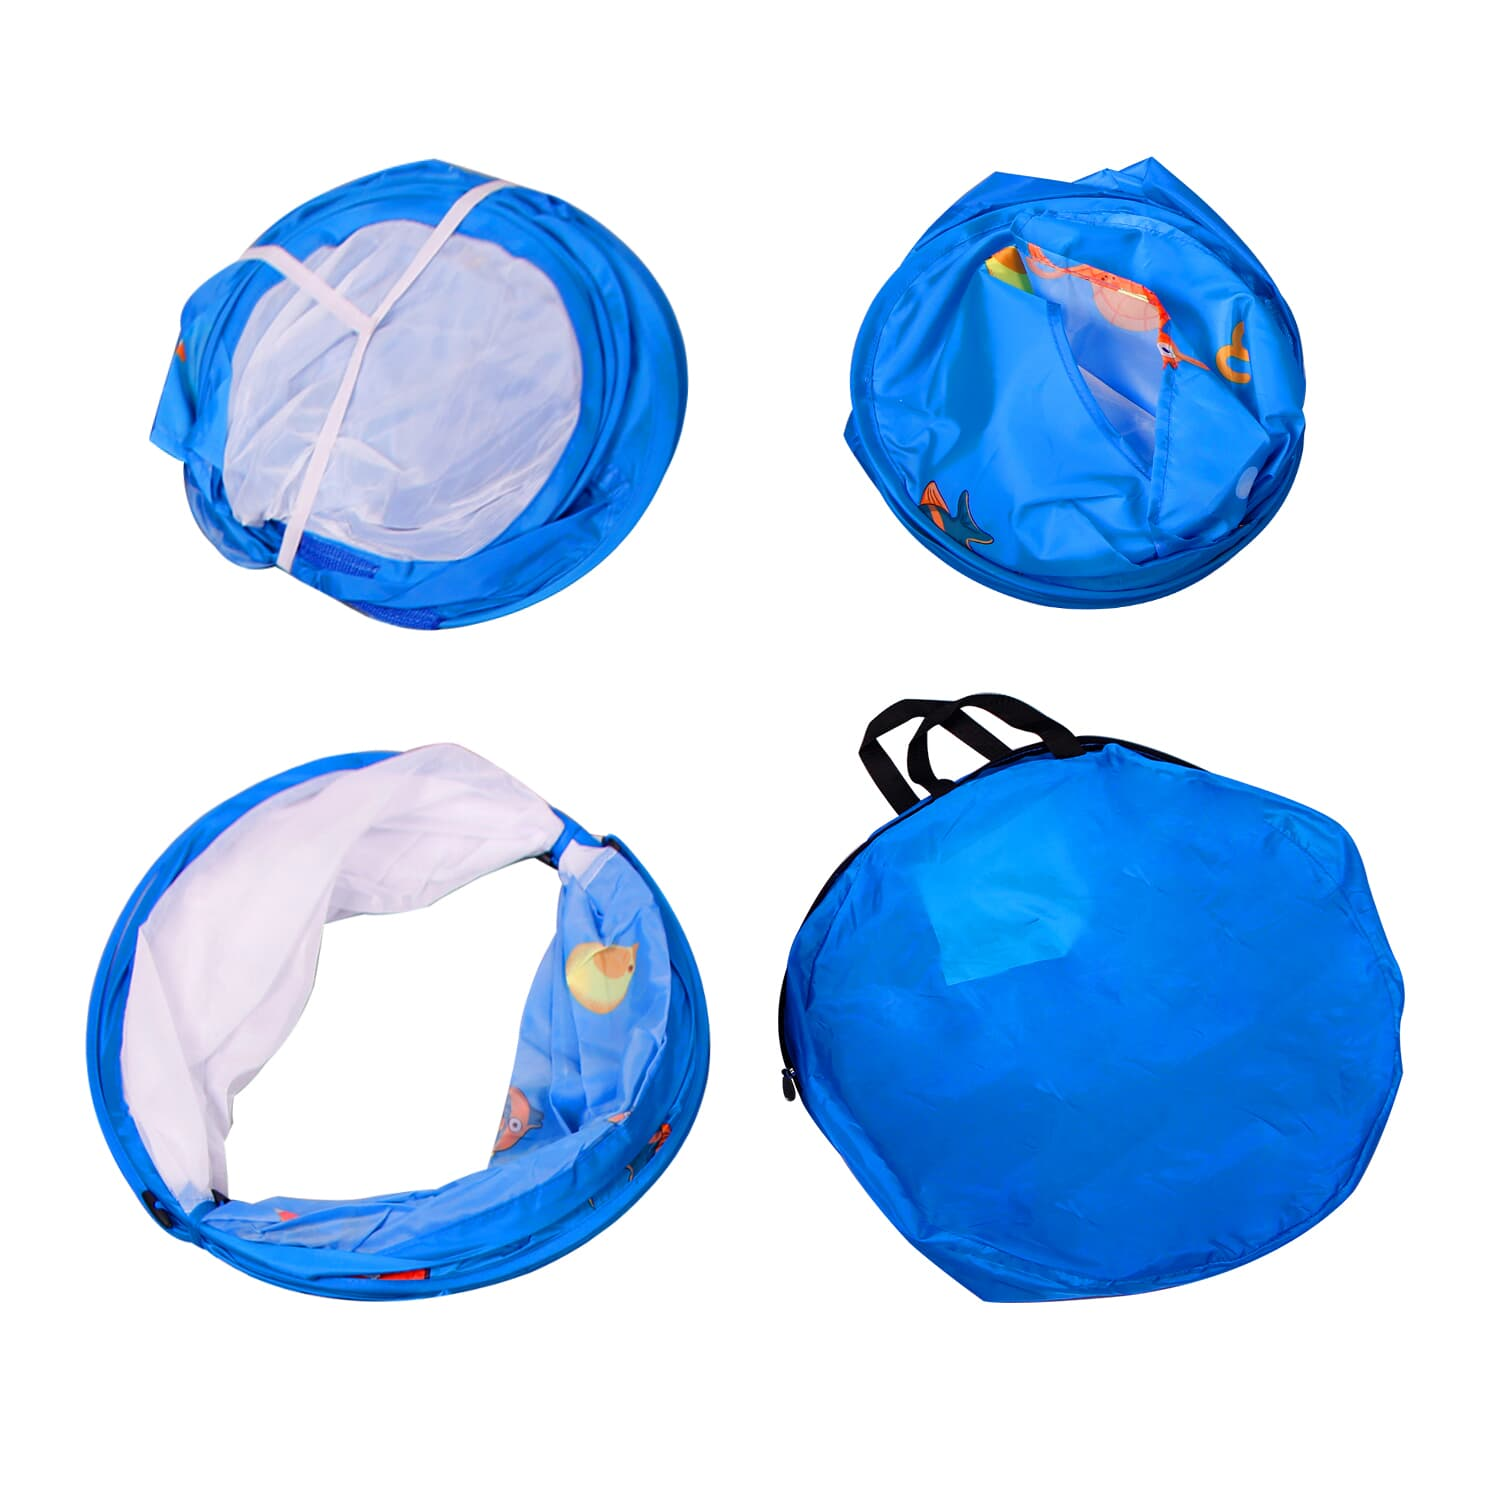 Homfu  3 in 1 Pop up Kids Play Tent with Tunnel Ocean Ball Pit Pool With Basket Hoop For Toddler Boys Girls To Play And Craw Indoor&Outdoor As Birthday Gift